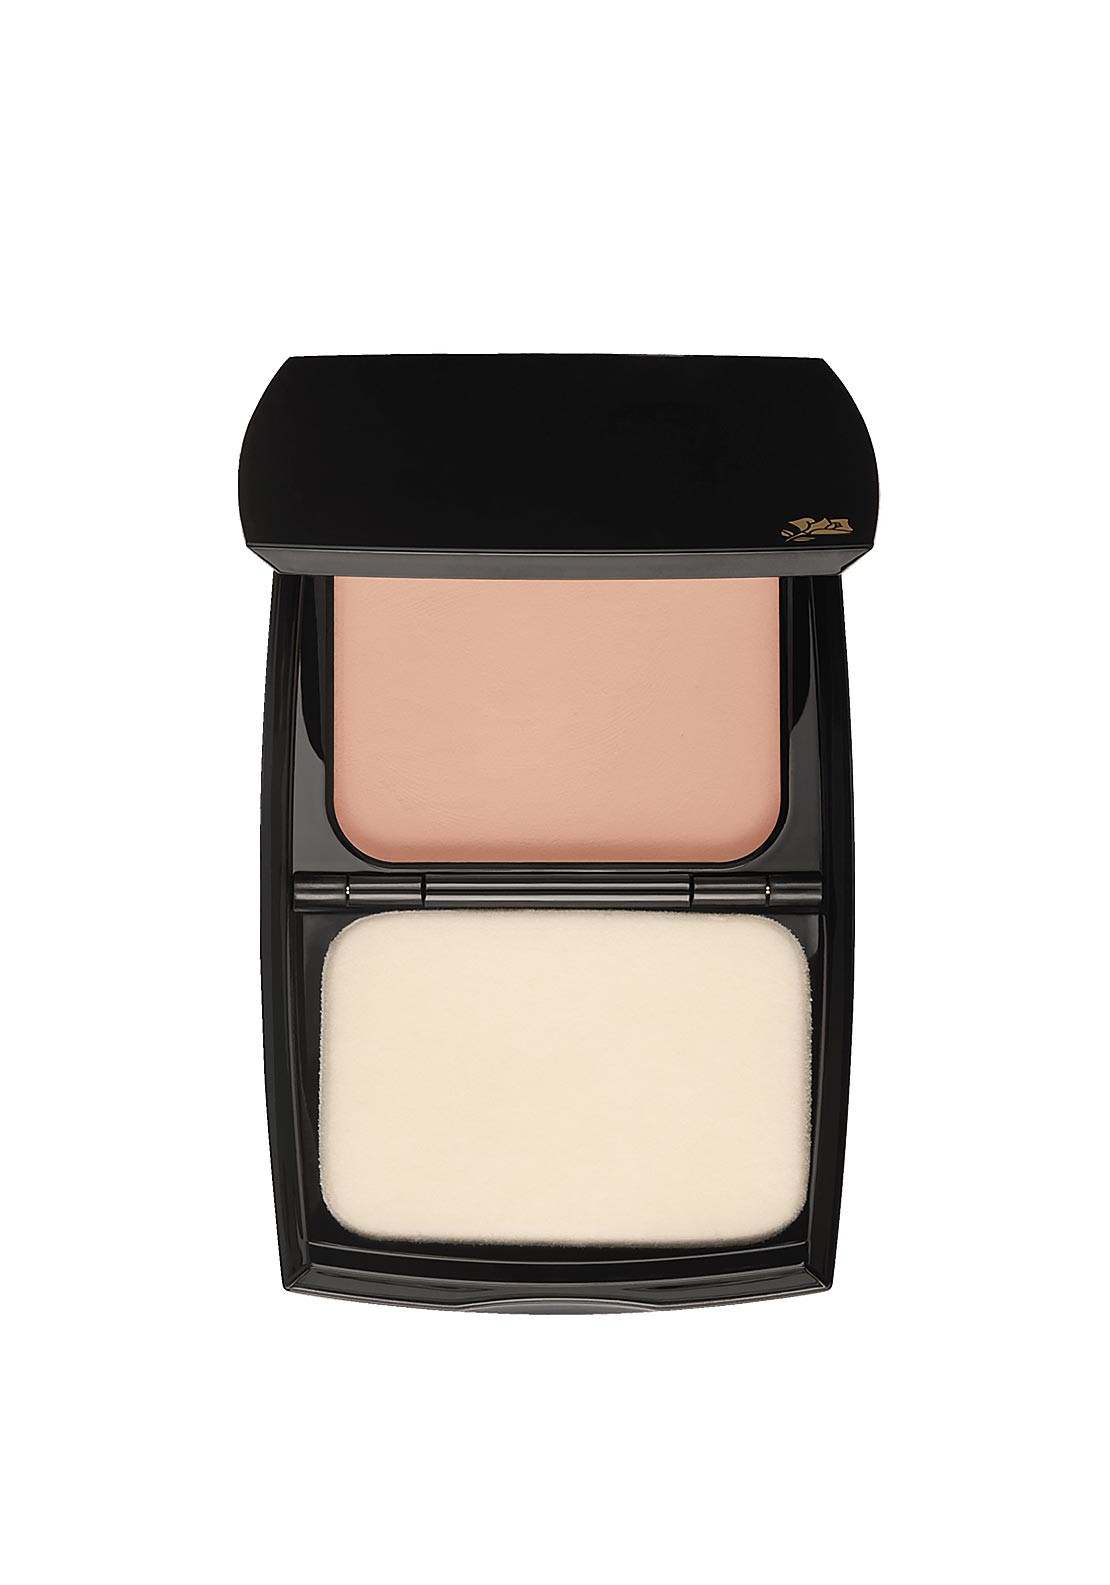 Lancome Teint Idole Ultra Compact Powder Foundation- 02